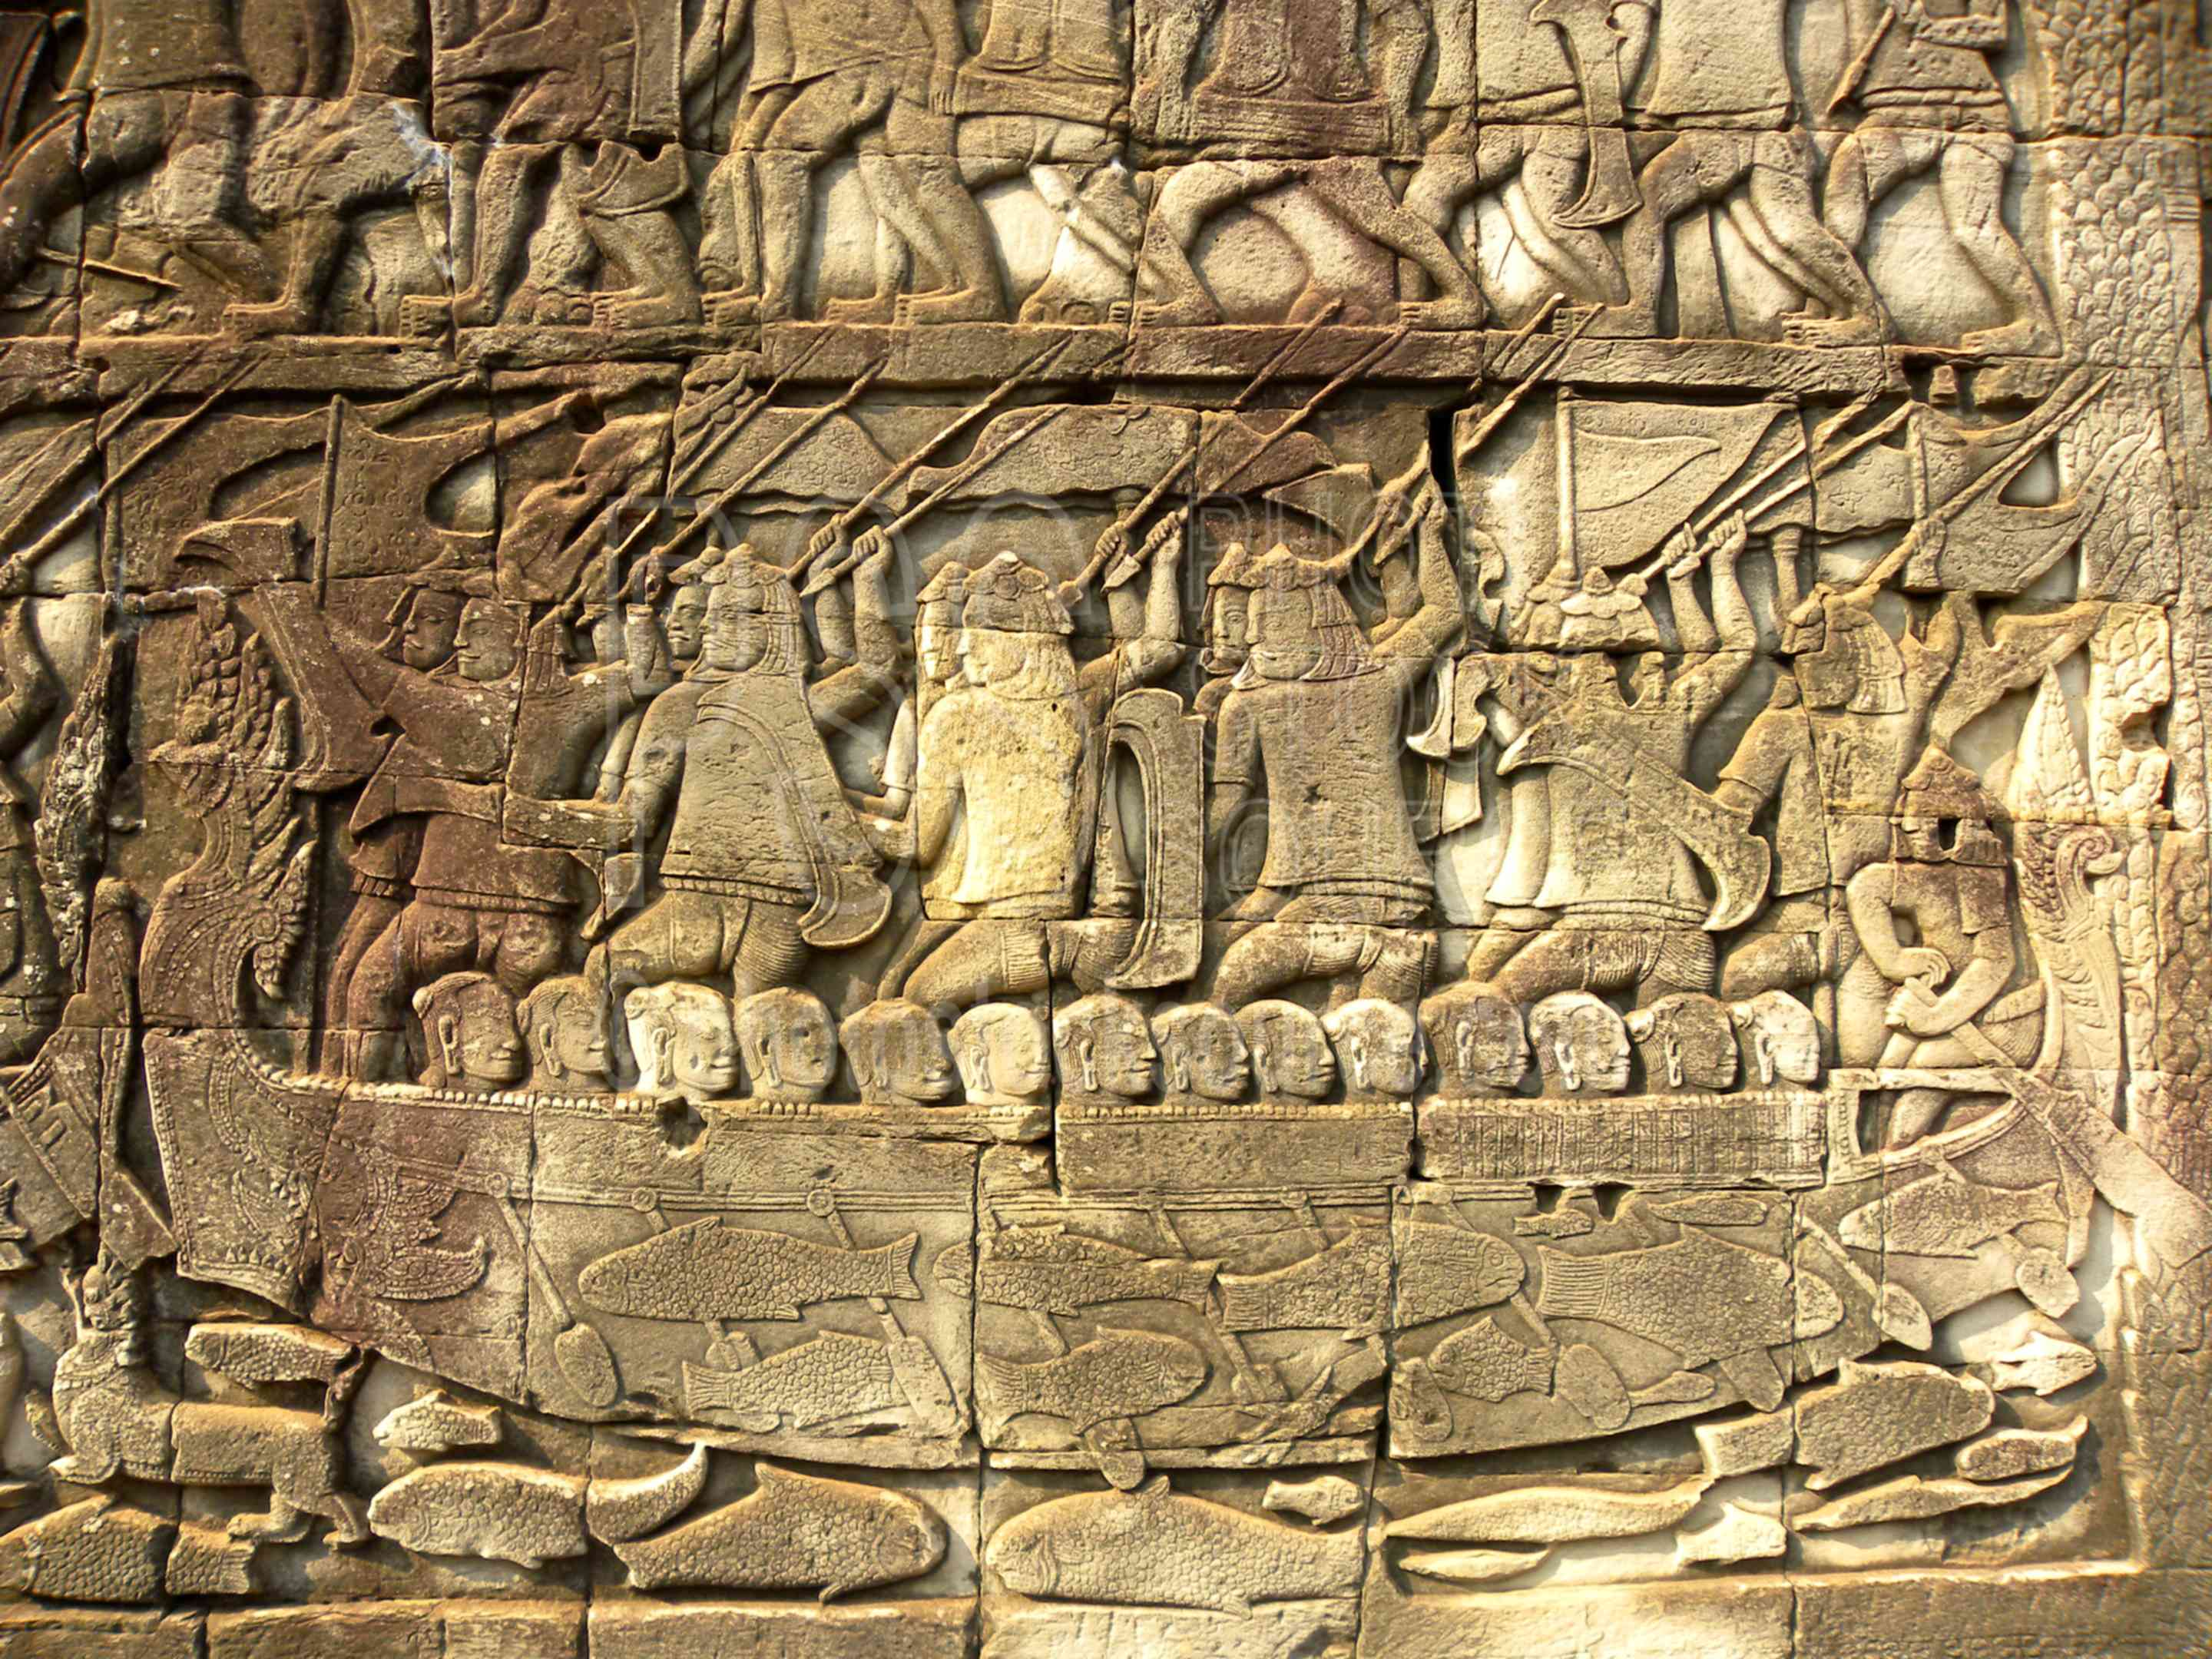 Bayon Bas-relief Carvings,temple,gate,statues,ruin,bas-relief,carving,wall,bayon